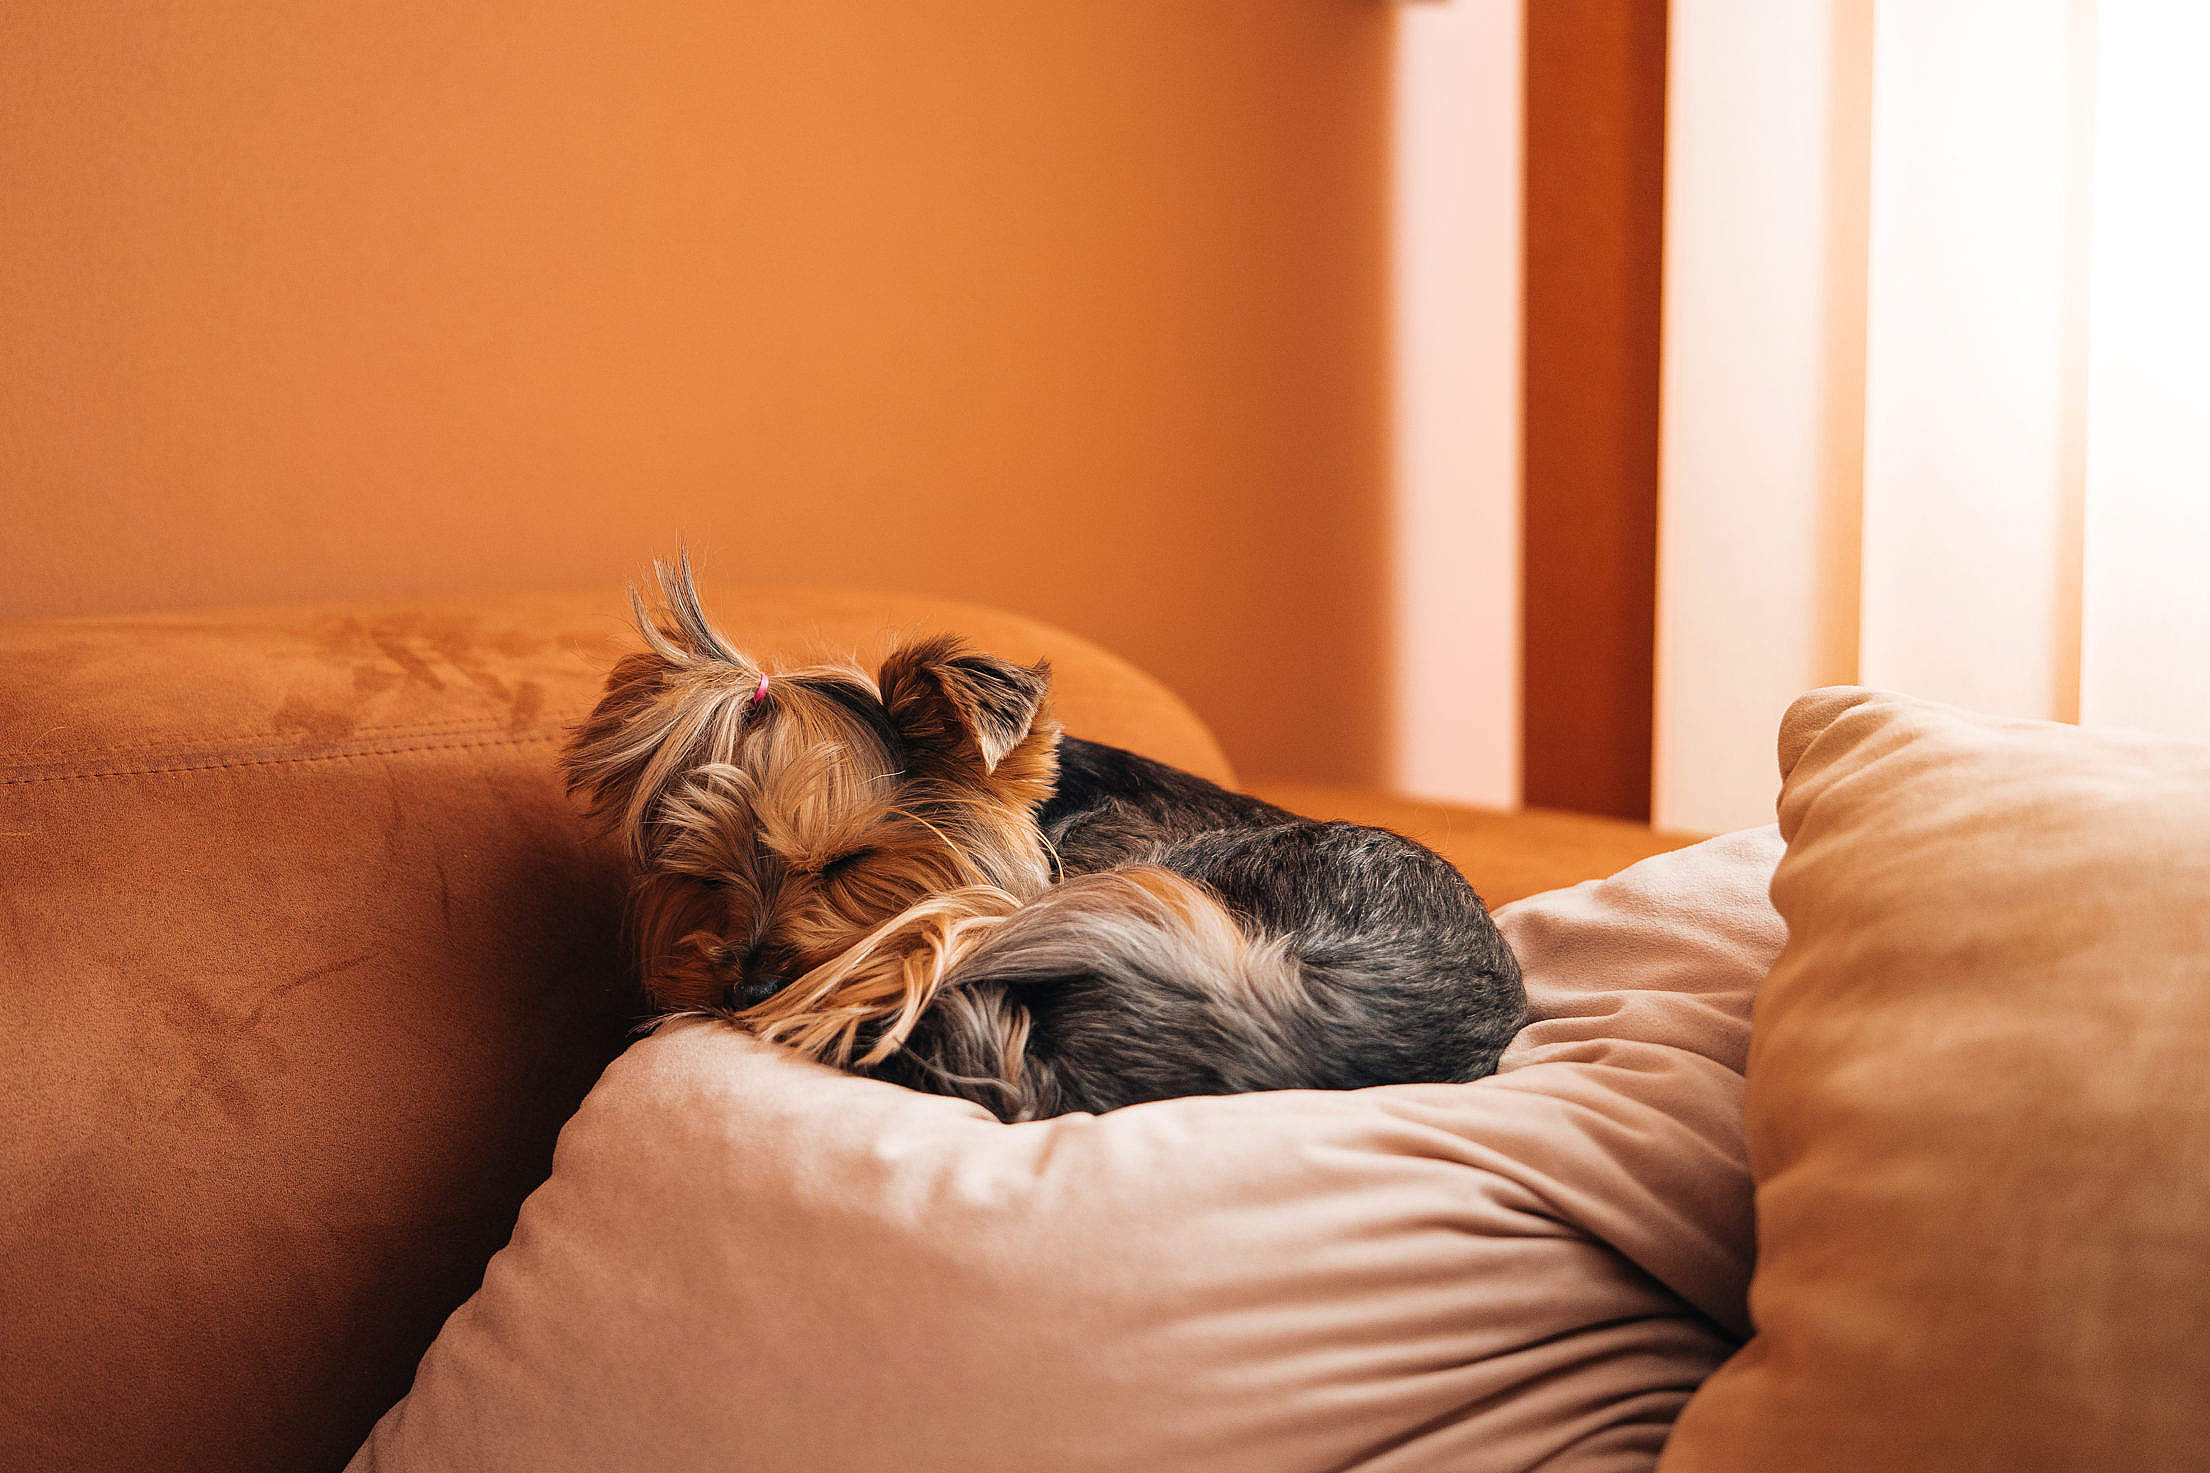 Cute Dog Sleeping on a Sofa Pillow Free Stock Photo